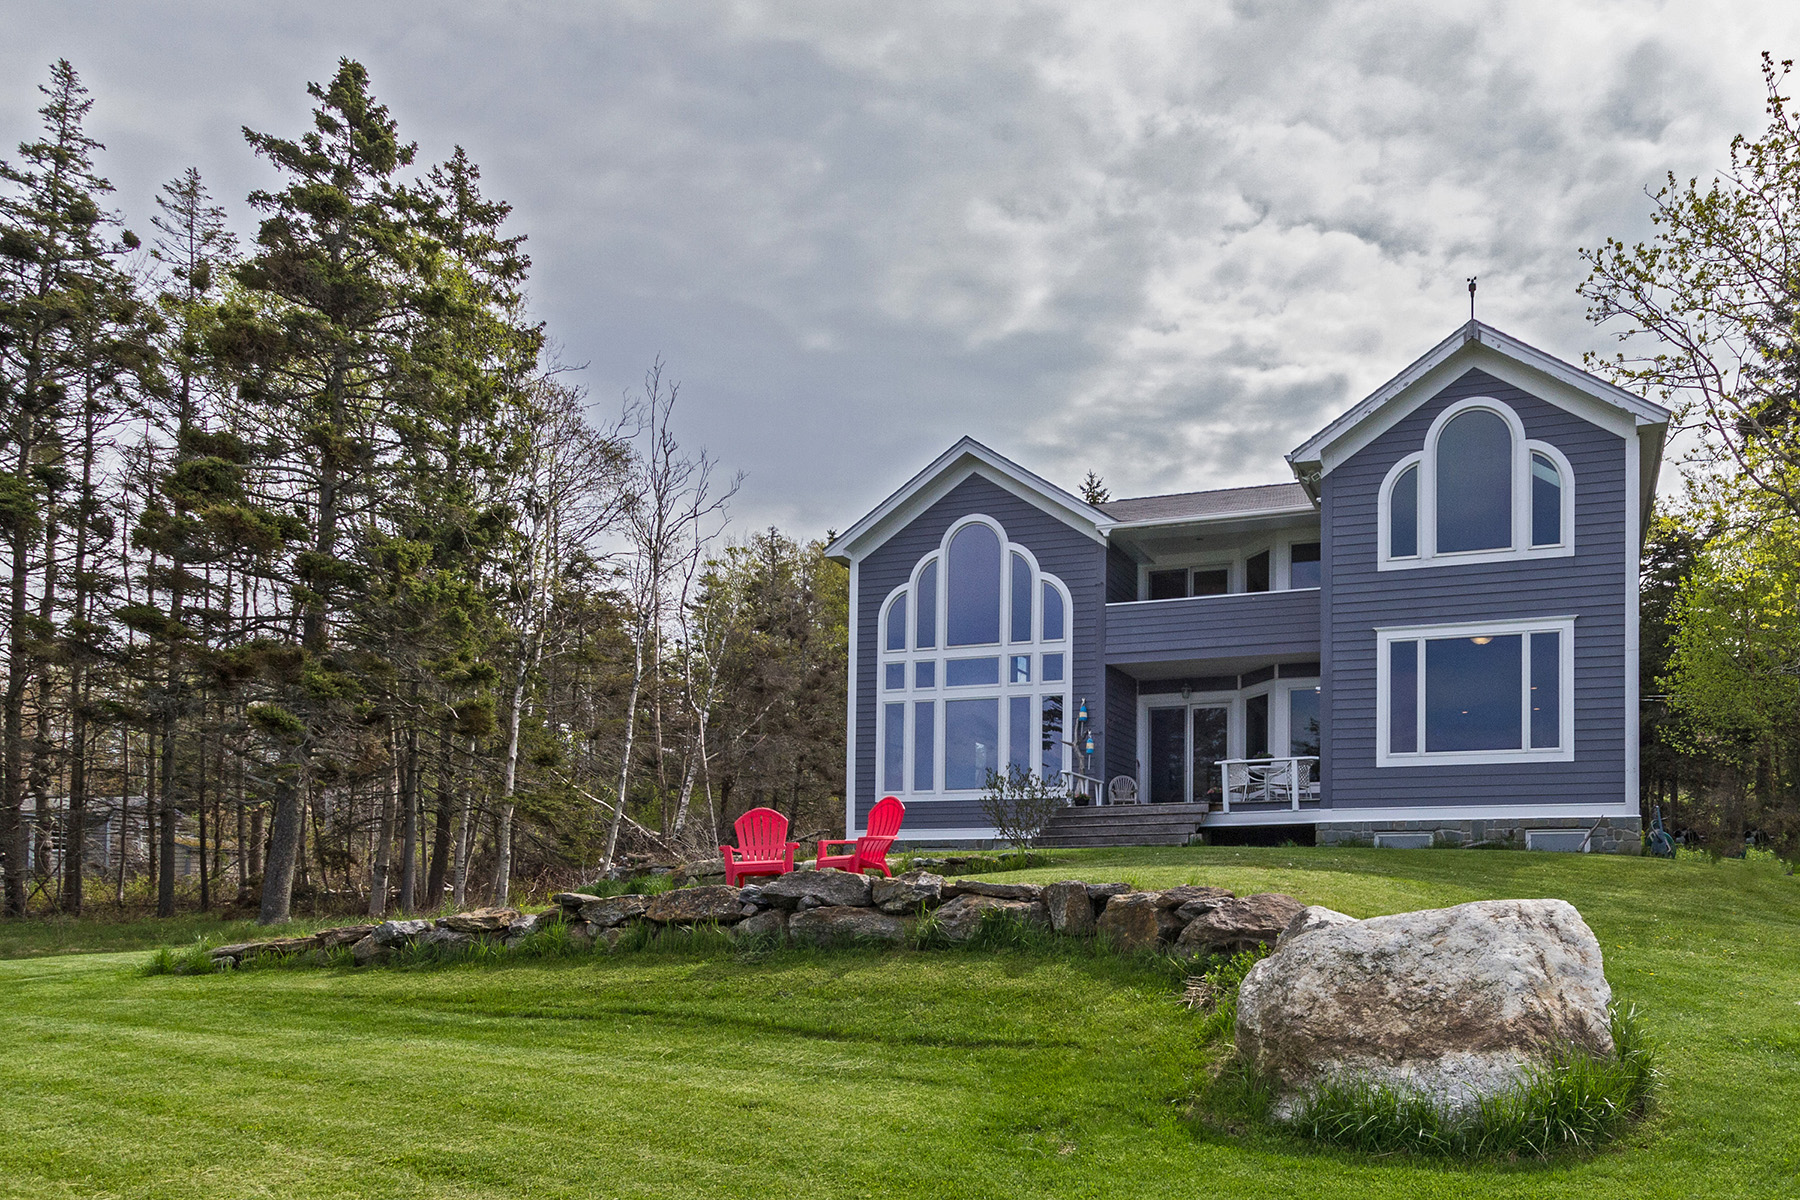 Casa Unifamiliar por un Venta en 4 Rose Way Bristol, Maine, 04554 Estados Unidos